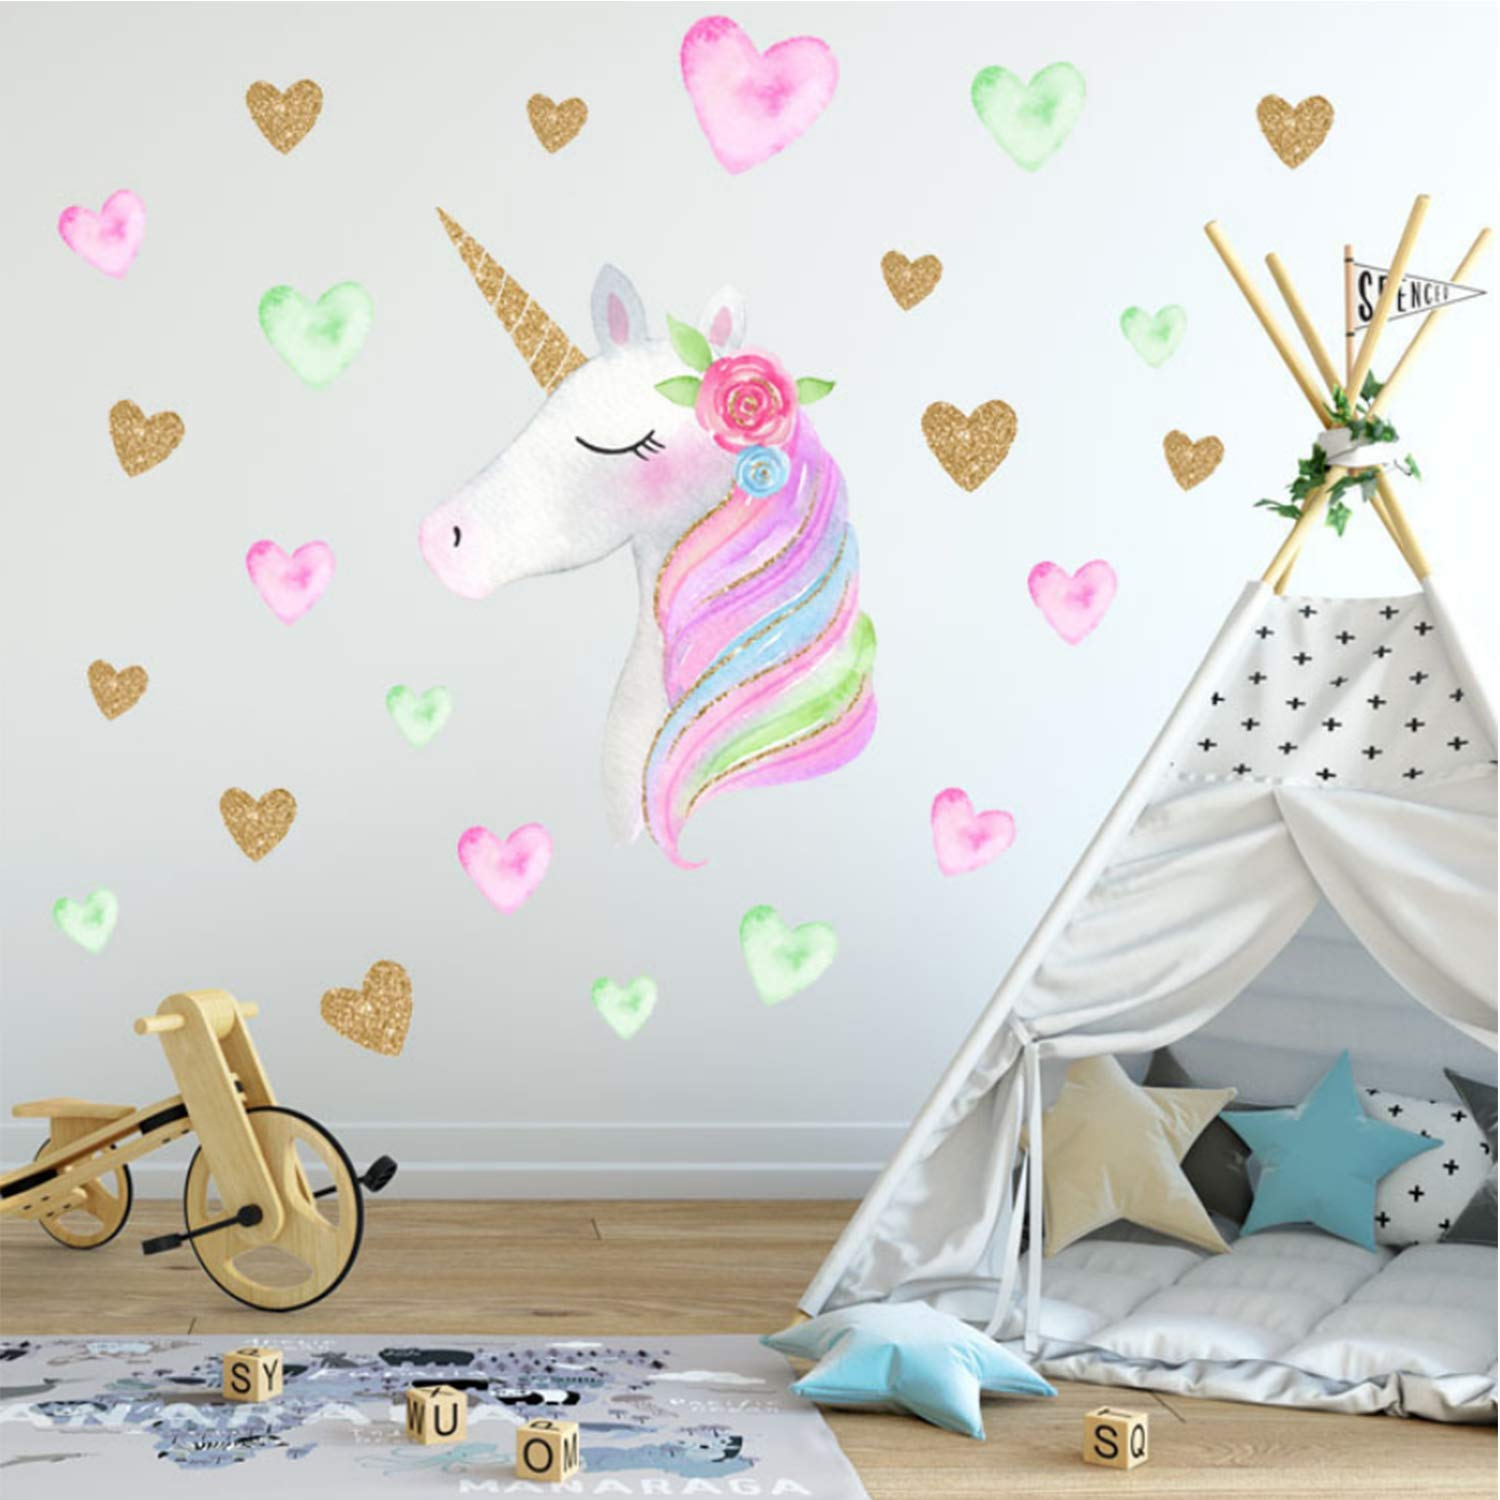 Left AIYANG Magical Unicorn Wall Decals Heart Wall Stickers for Girls Baby Kids Room Decoration